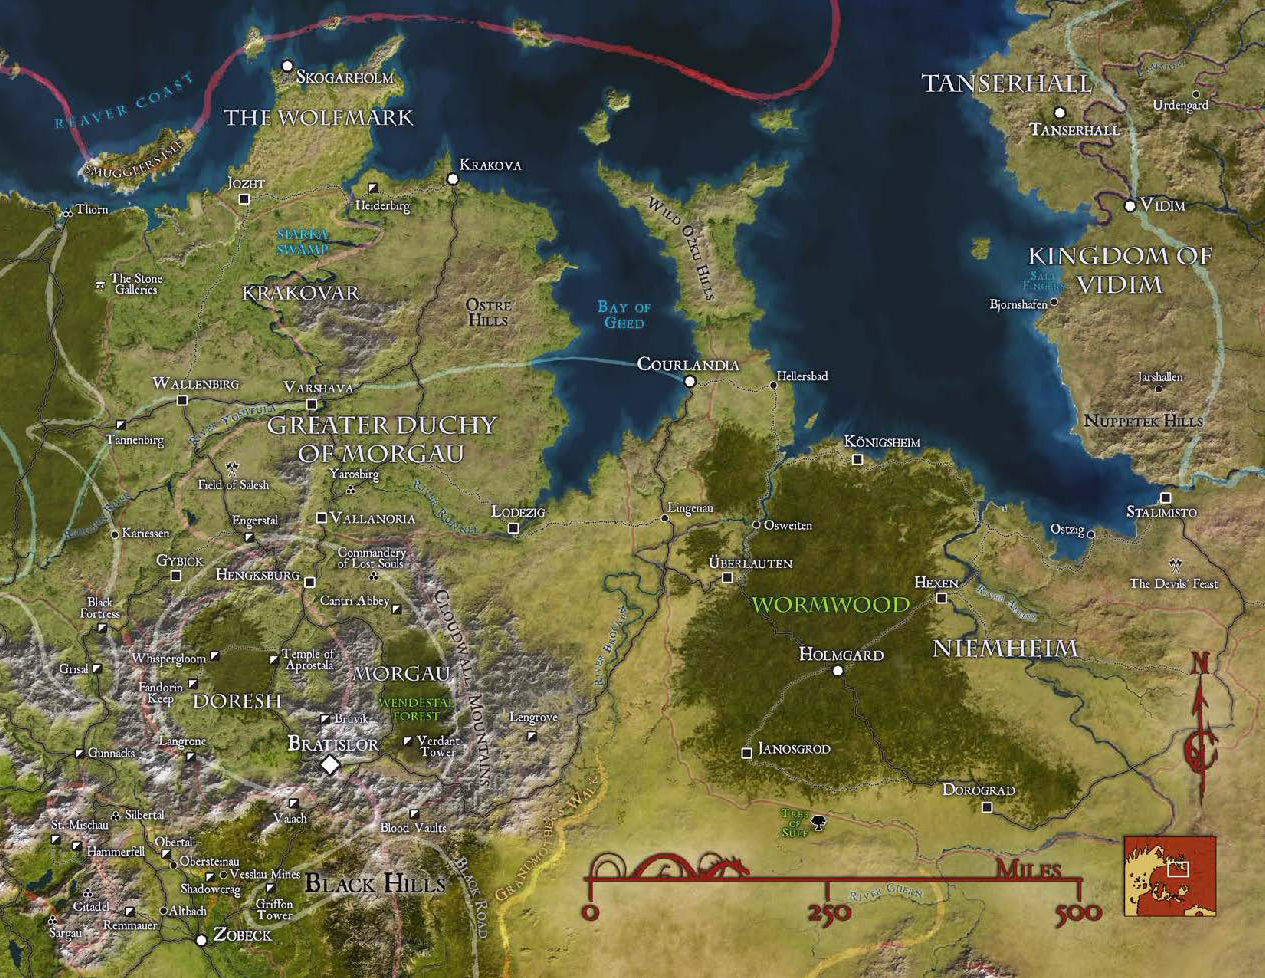 So You Want to Play in Midgard? (But You Don't Know Where to Start)